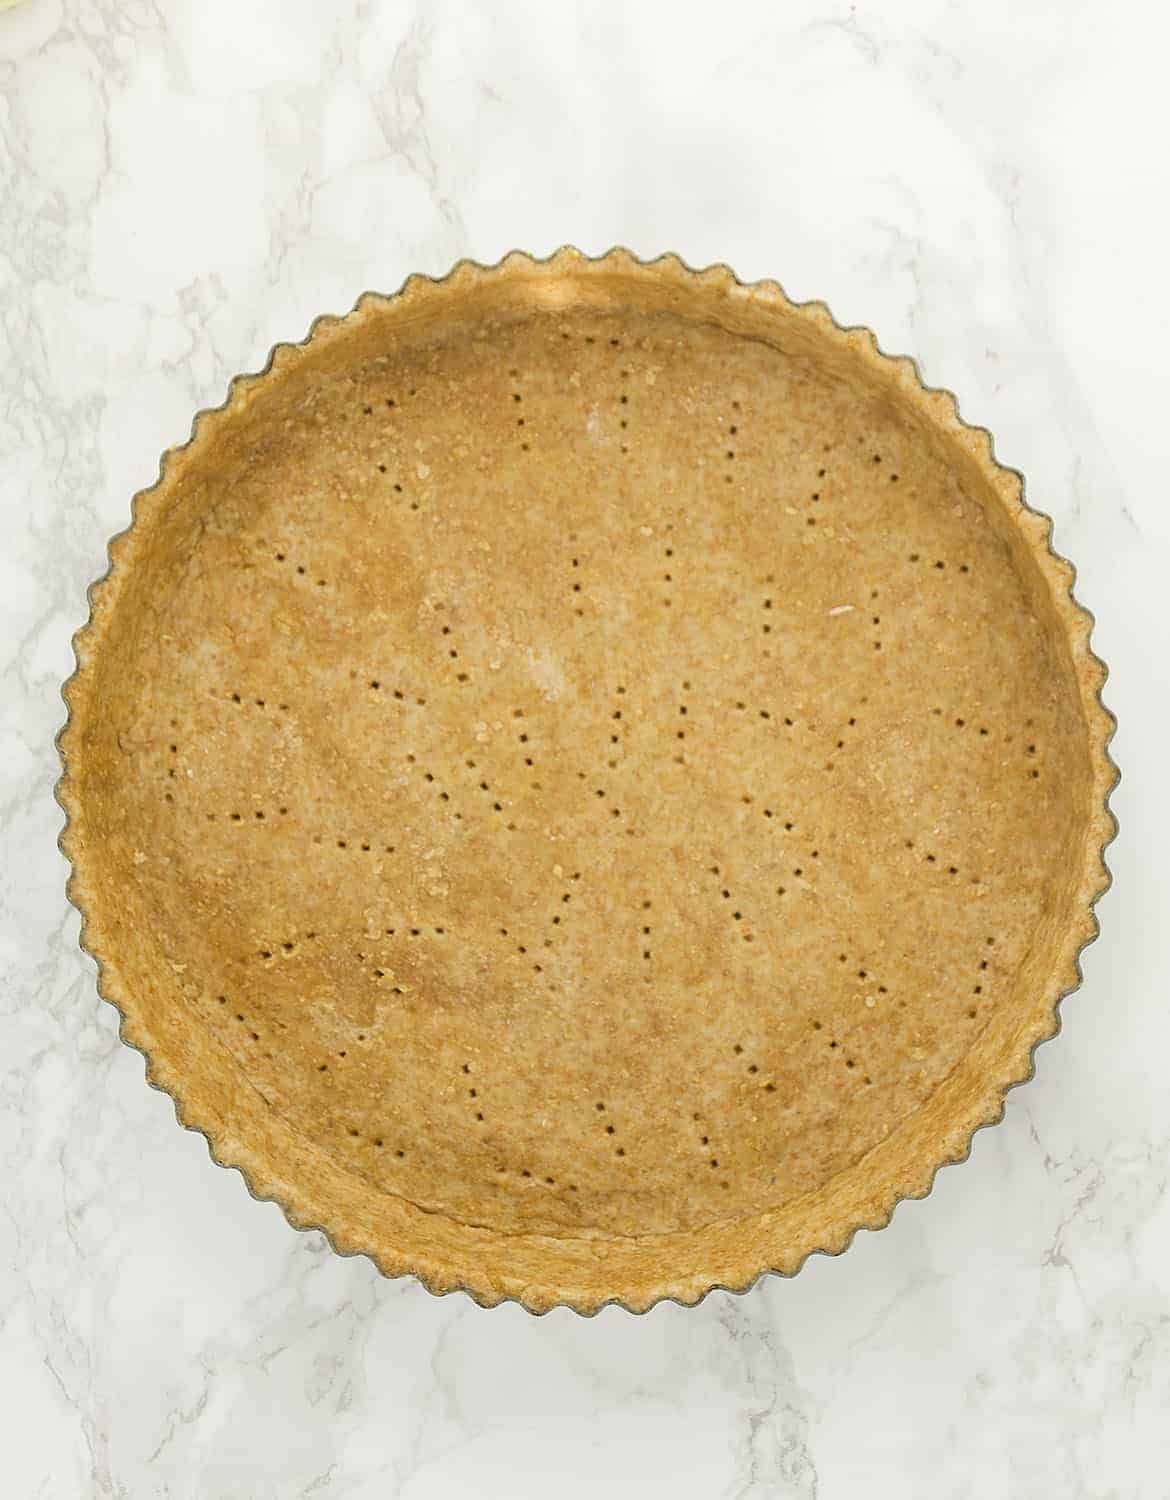 A top view of a round pie crust over a white background.